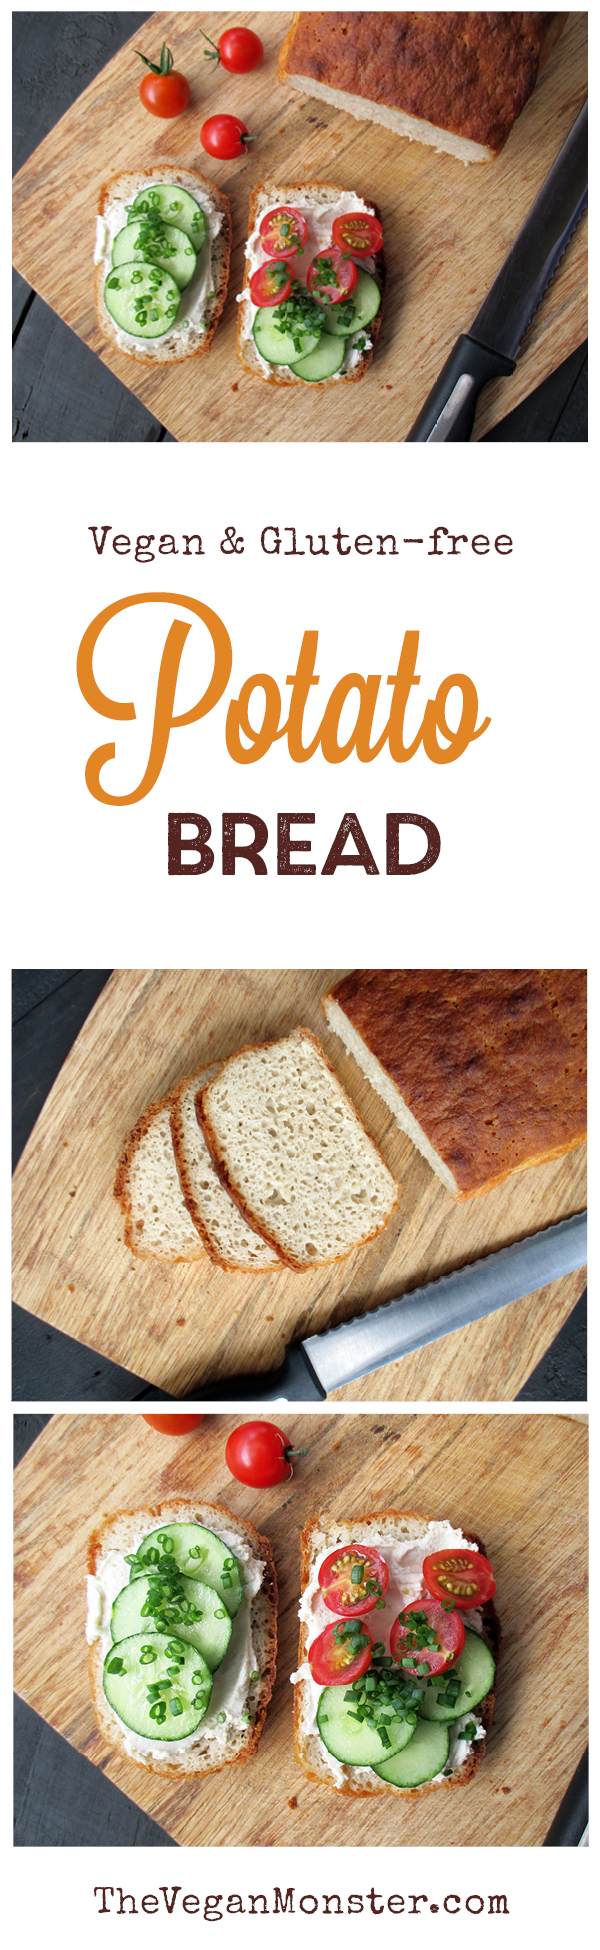 Vegan Gluten-free Potato Bread Recipe